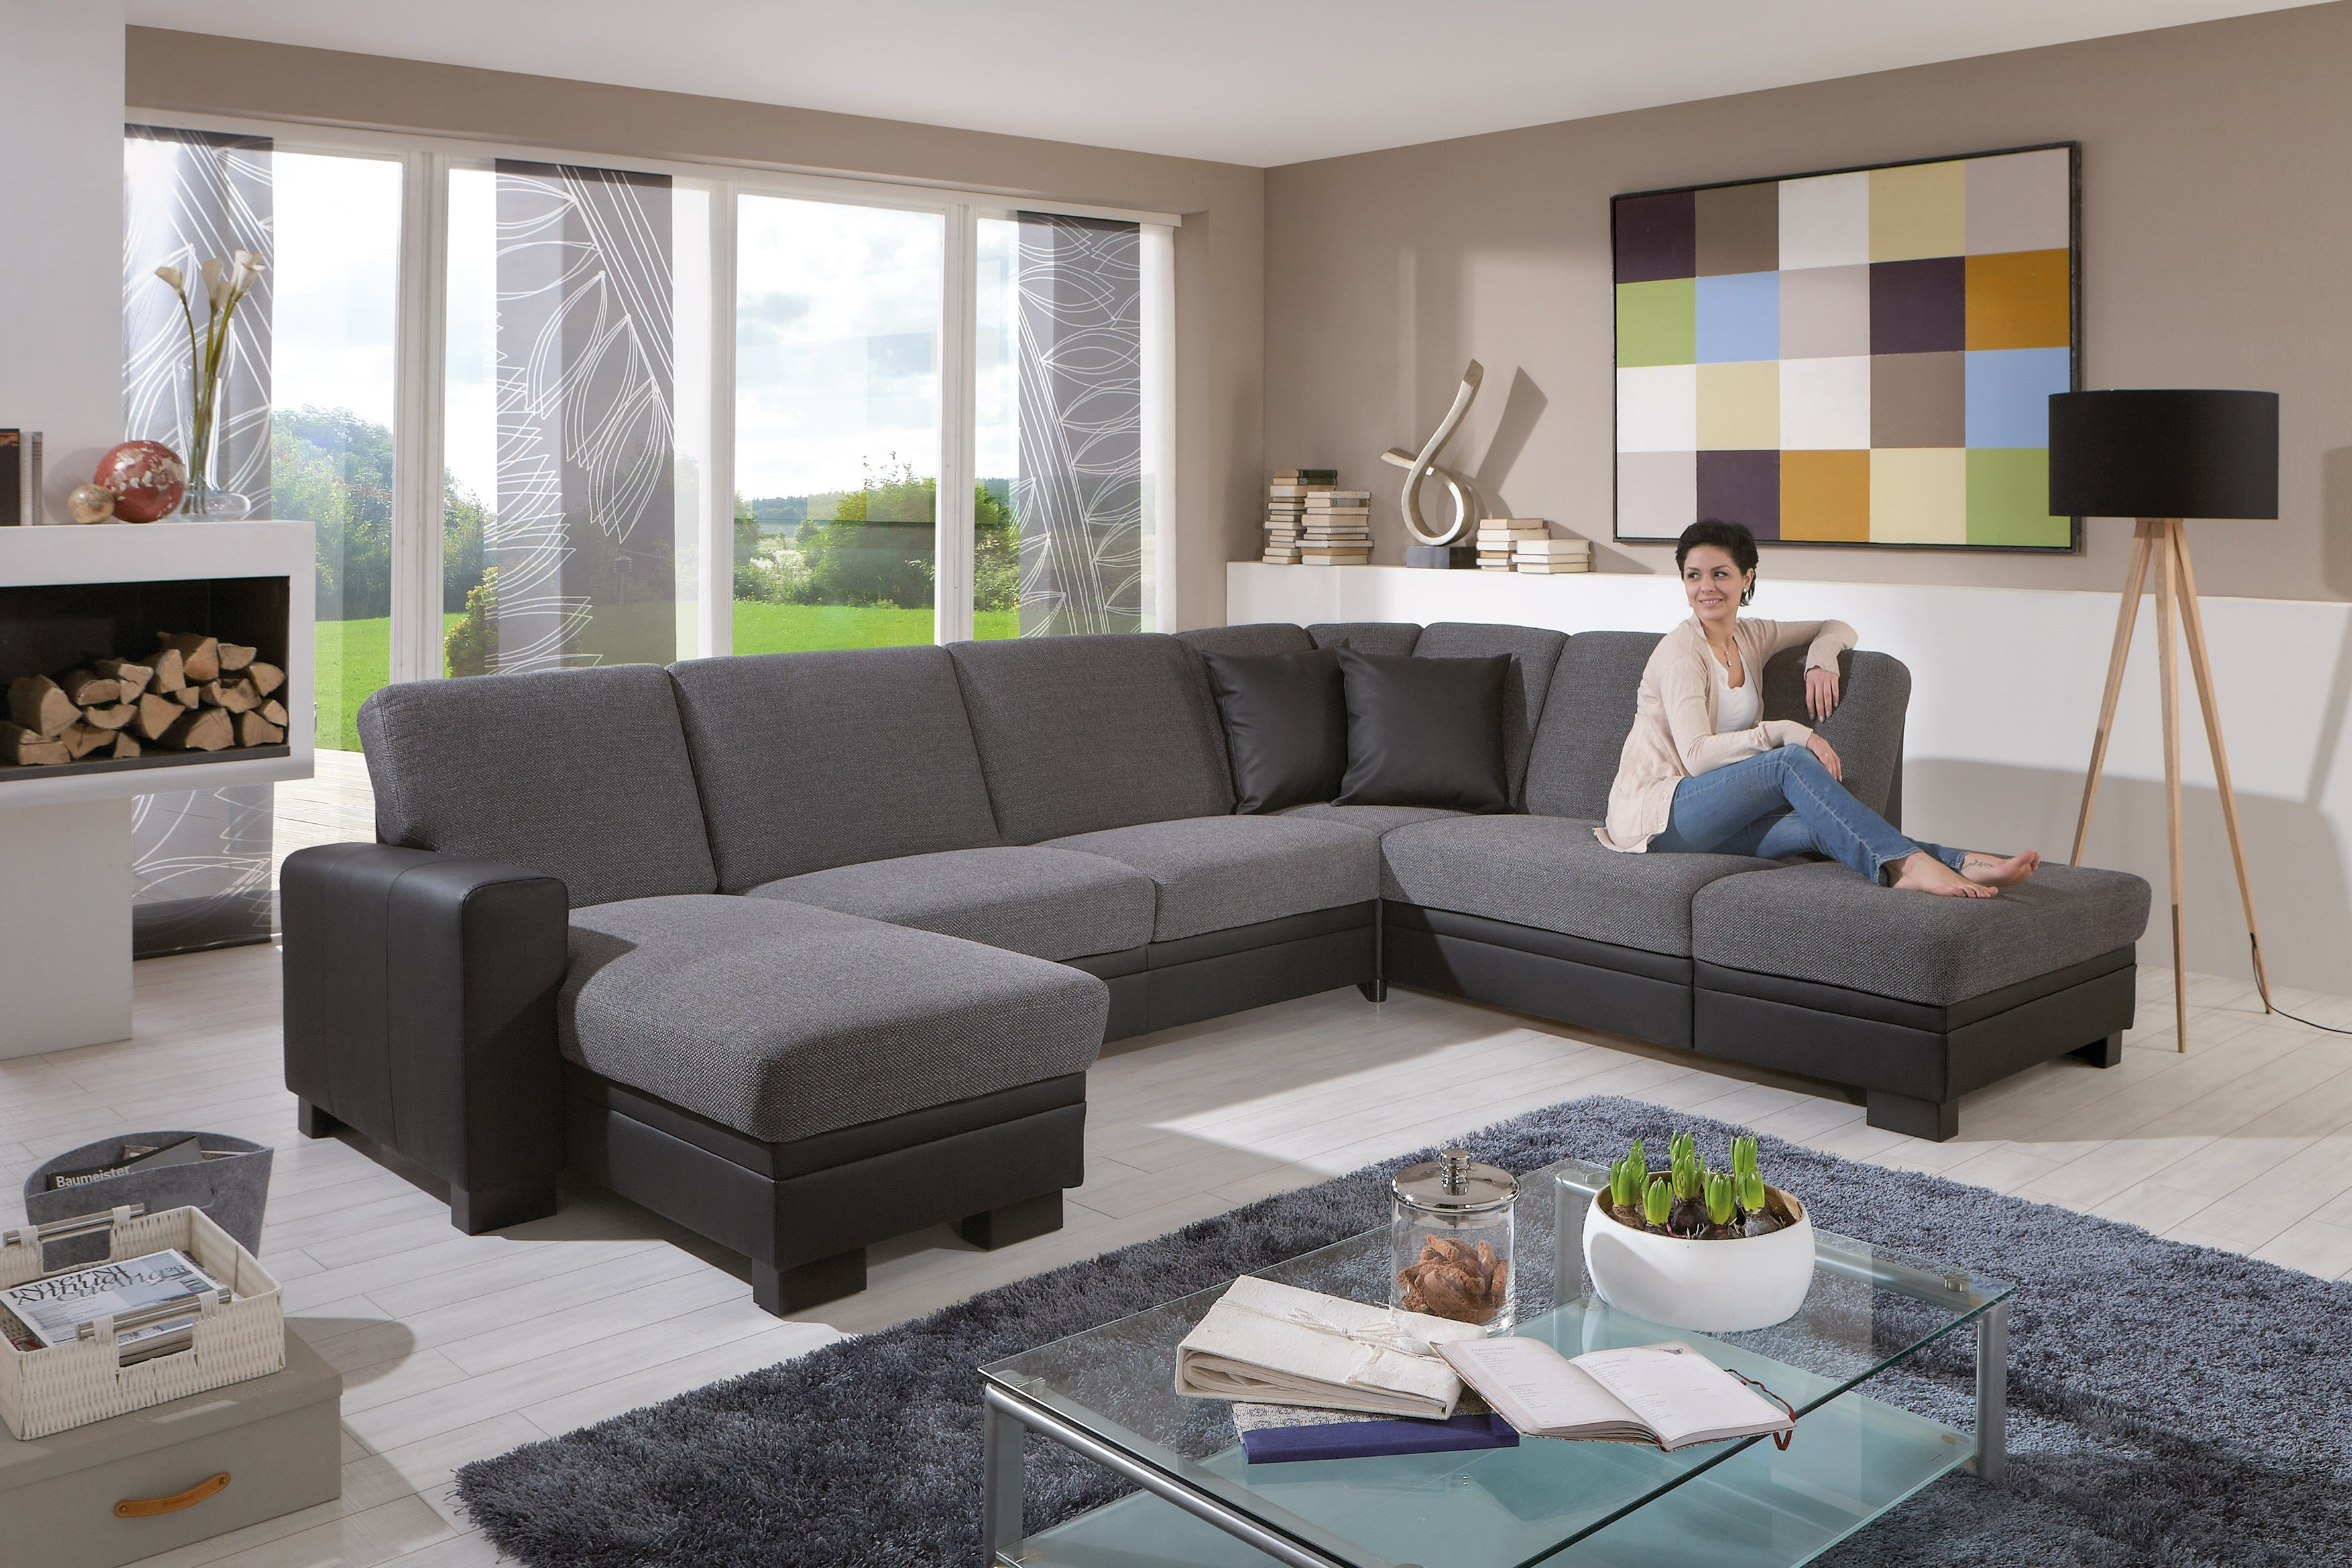 cleveland cincinatti von zehdenick wohnlandschaft grau polsterm bel g nstig online kaufen sofa. Black Bedroom Furniture Sets. Home Design Ideas